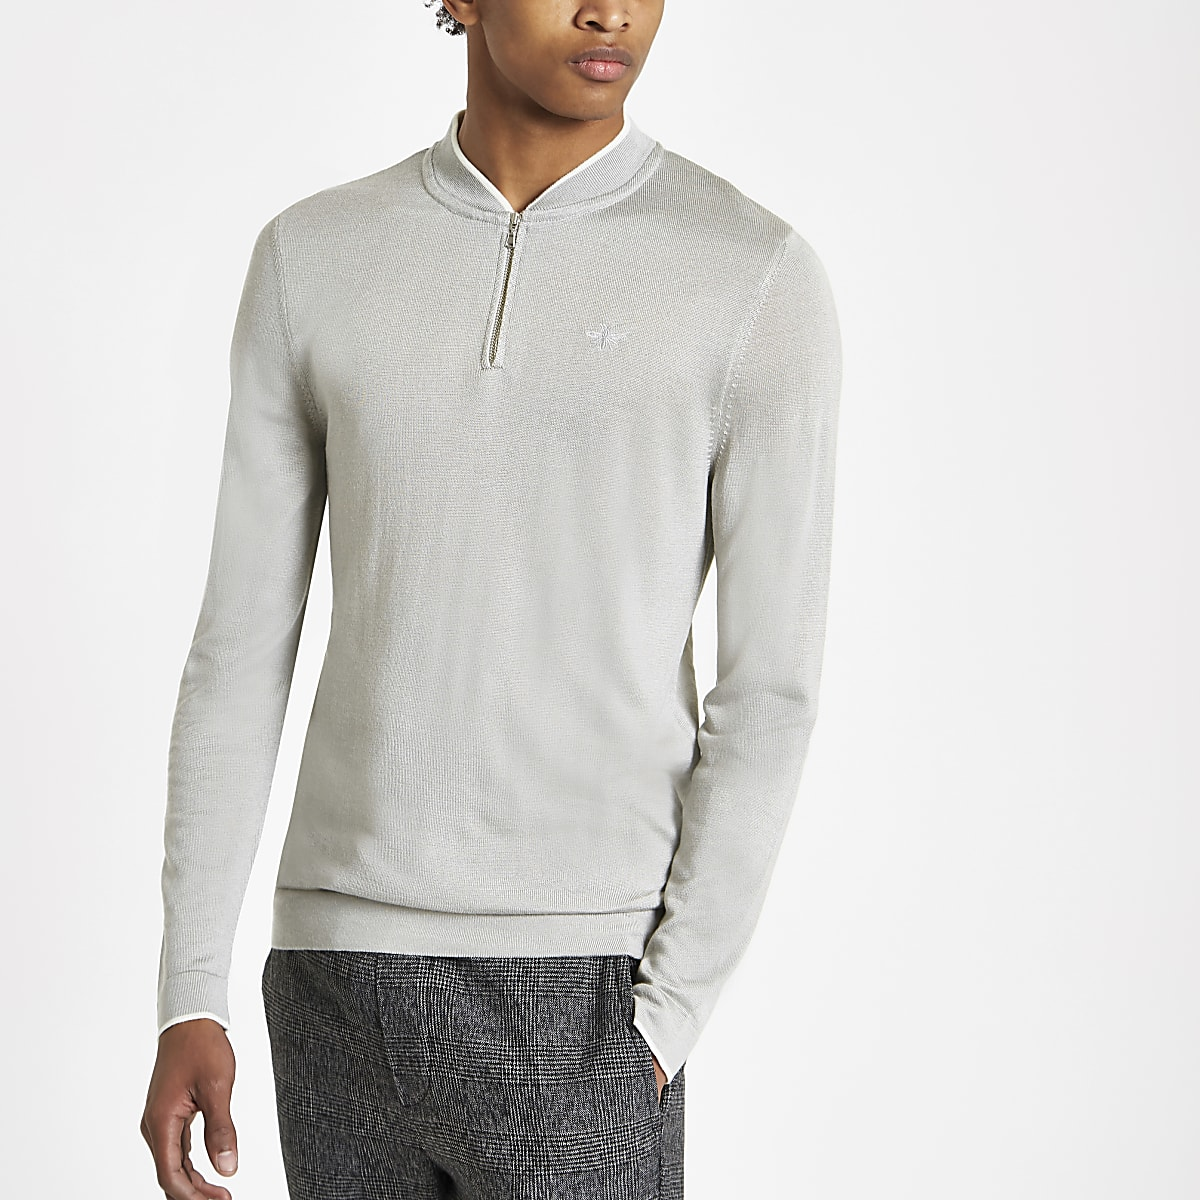 Grey muscle fit zip baseball top